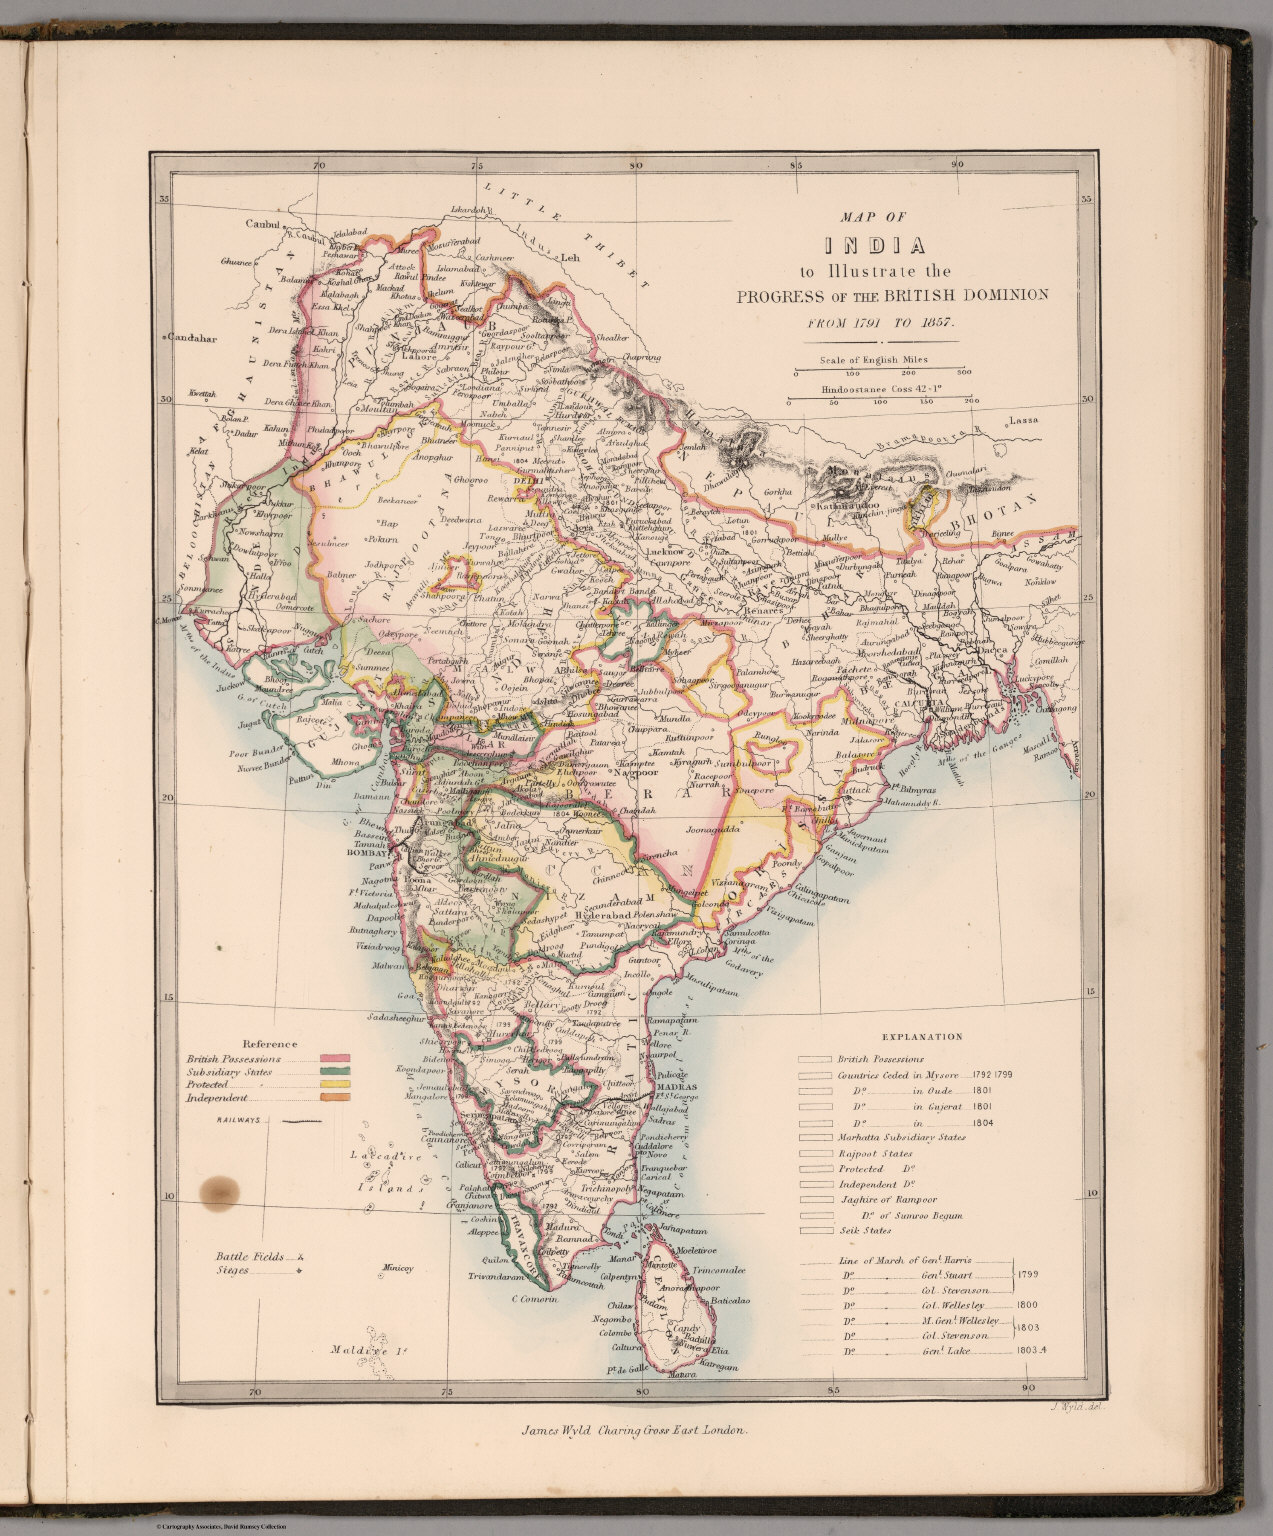 Map of india to illustrate the progress of the british dominion from map of india to illustrate the progress of the british dominion from 1791 to 1857 gumiabroncs Choice Image